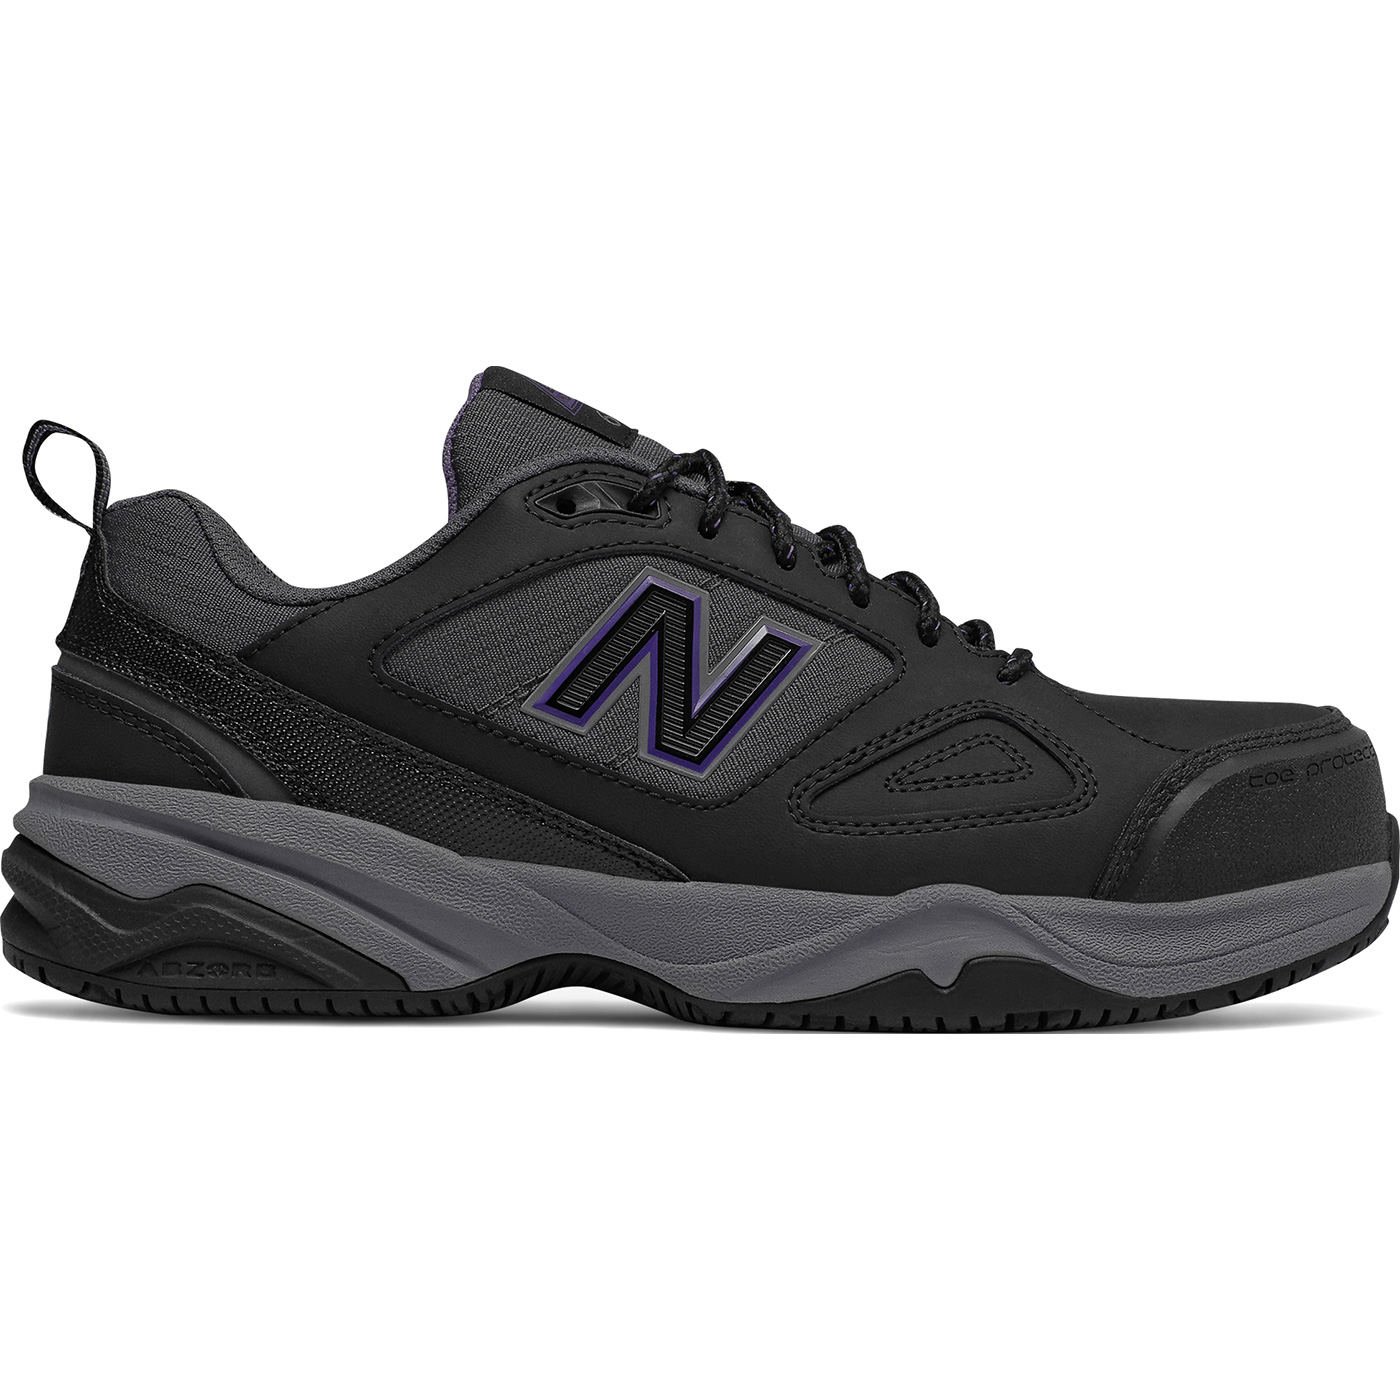 980e6b9d New Balance 627v2 Women's Steel Toe Slip Resistant Static Dissipative  Athletic Work Shoes